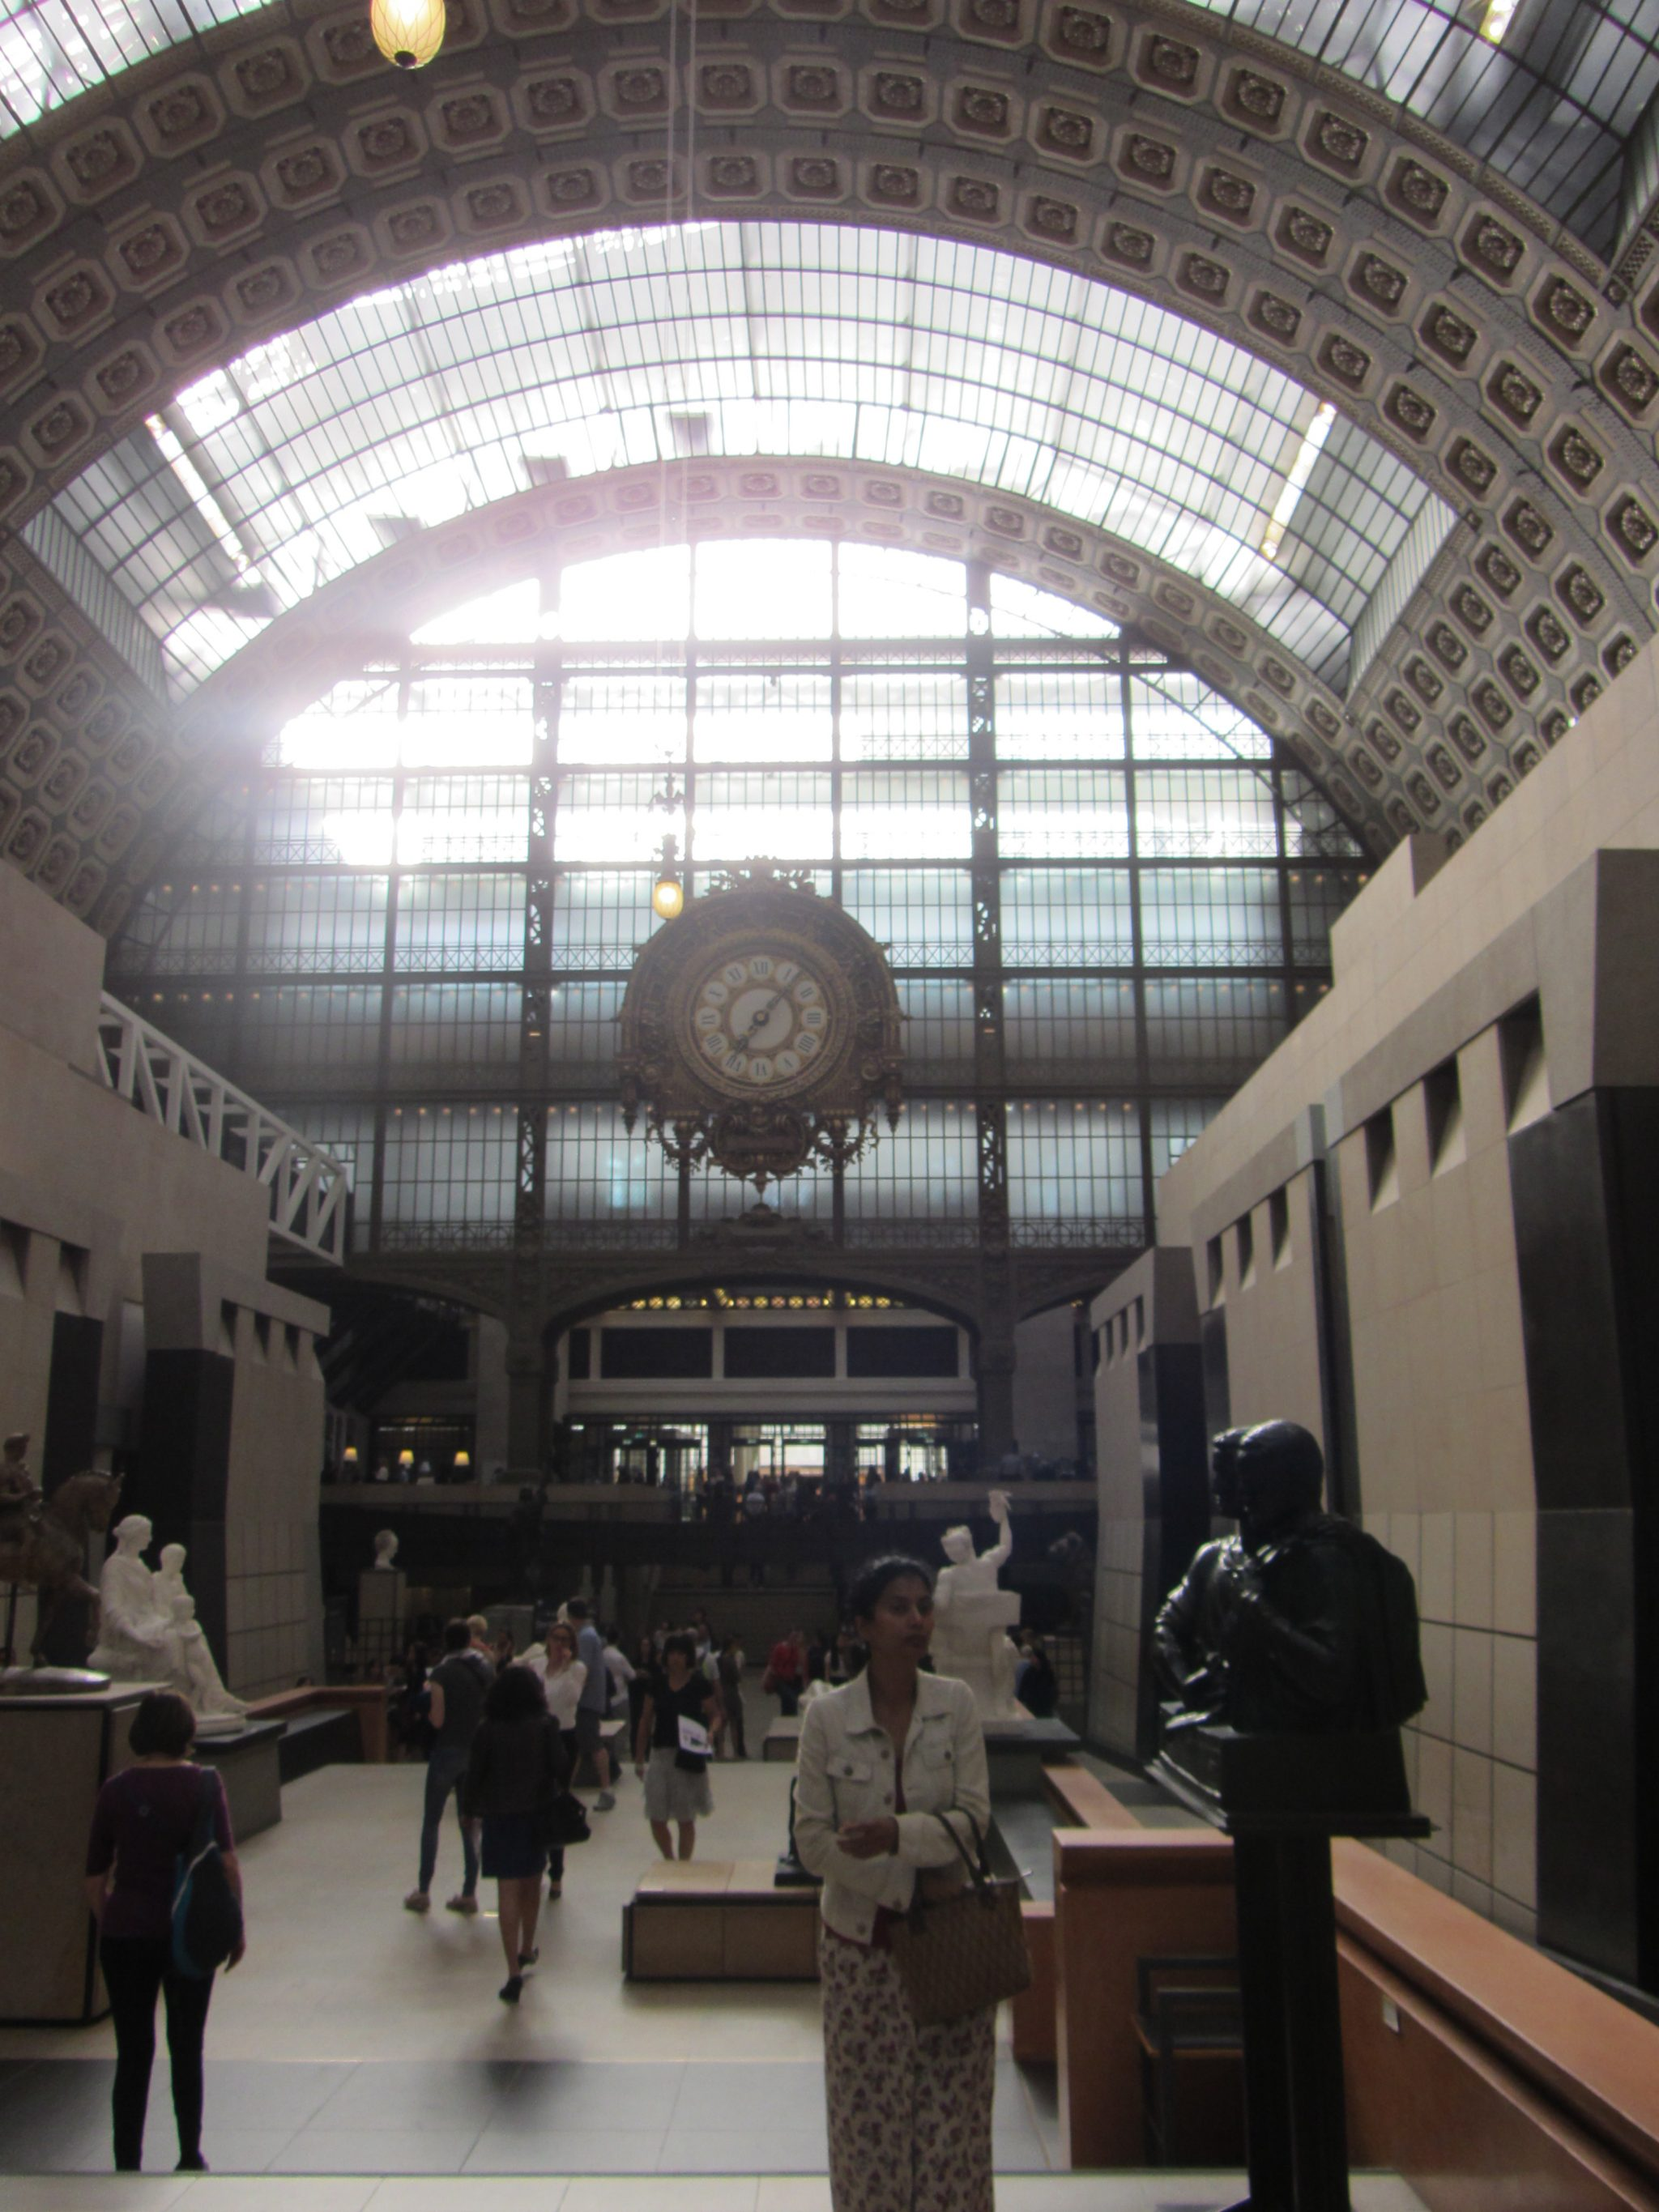 Looking at the Wall of Windows and the Big Clock in the Main Hall of the Musee d'Orsay in Paris